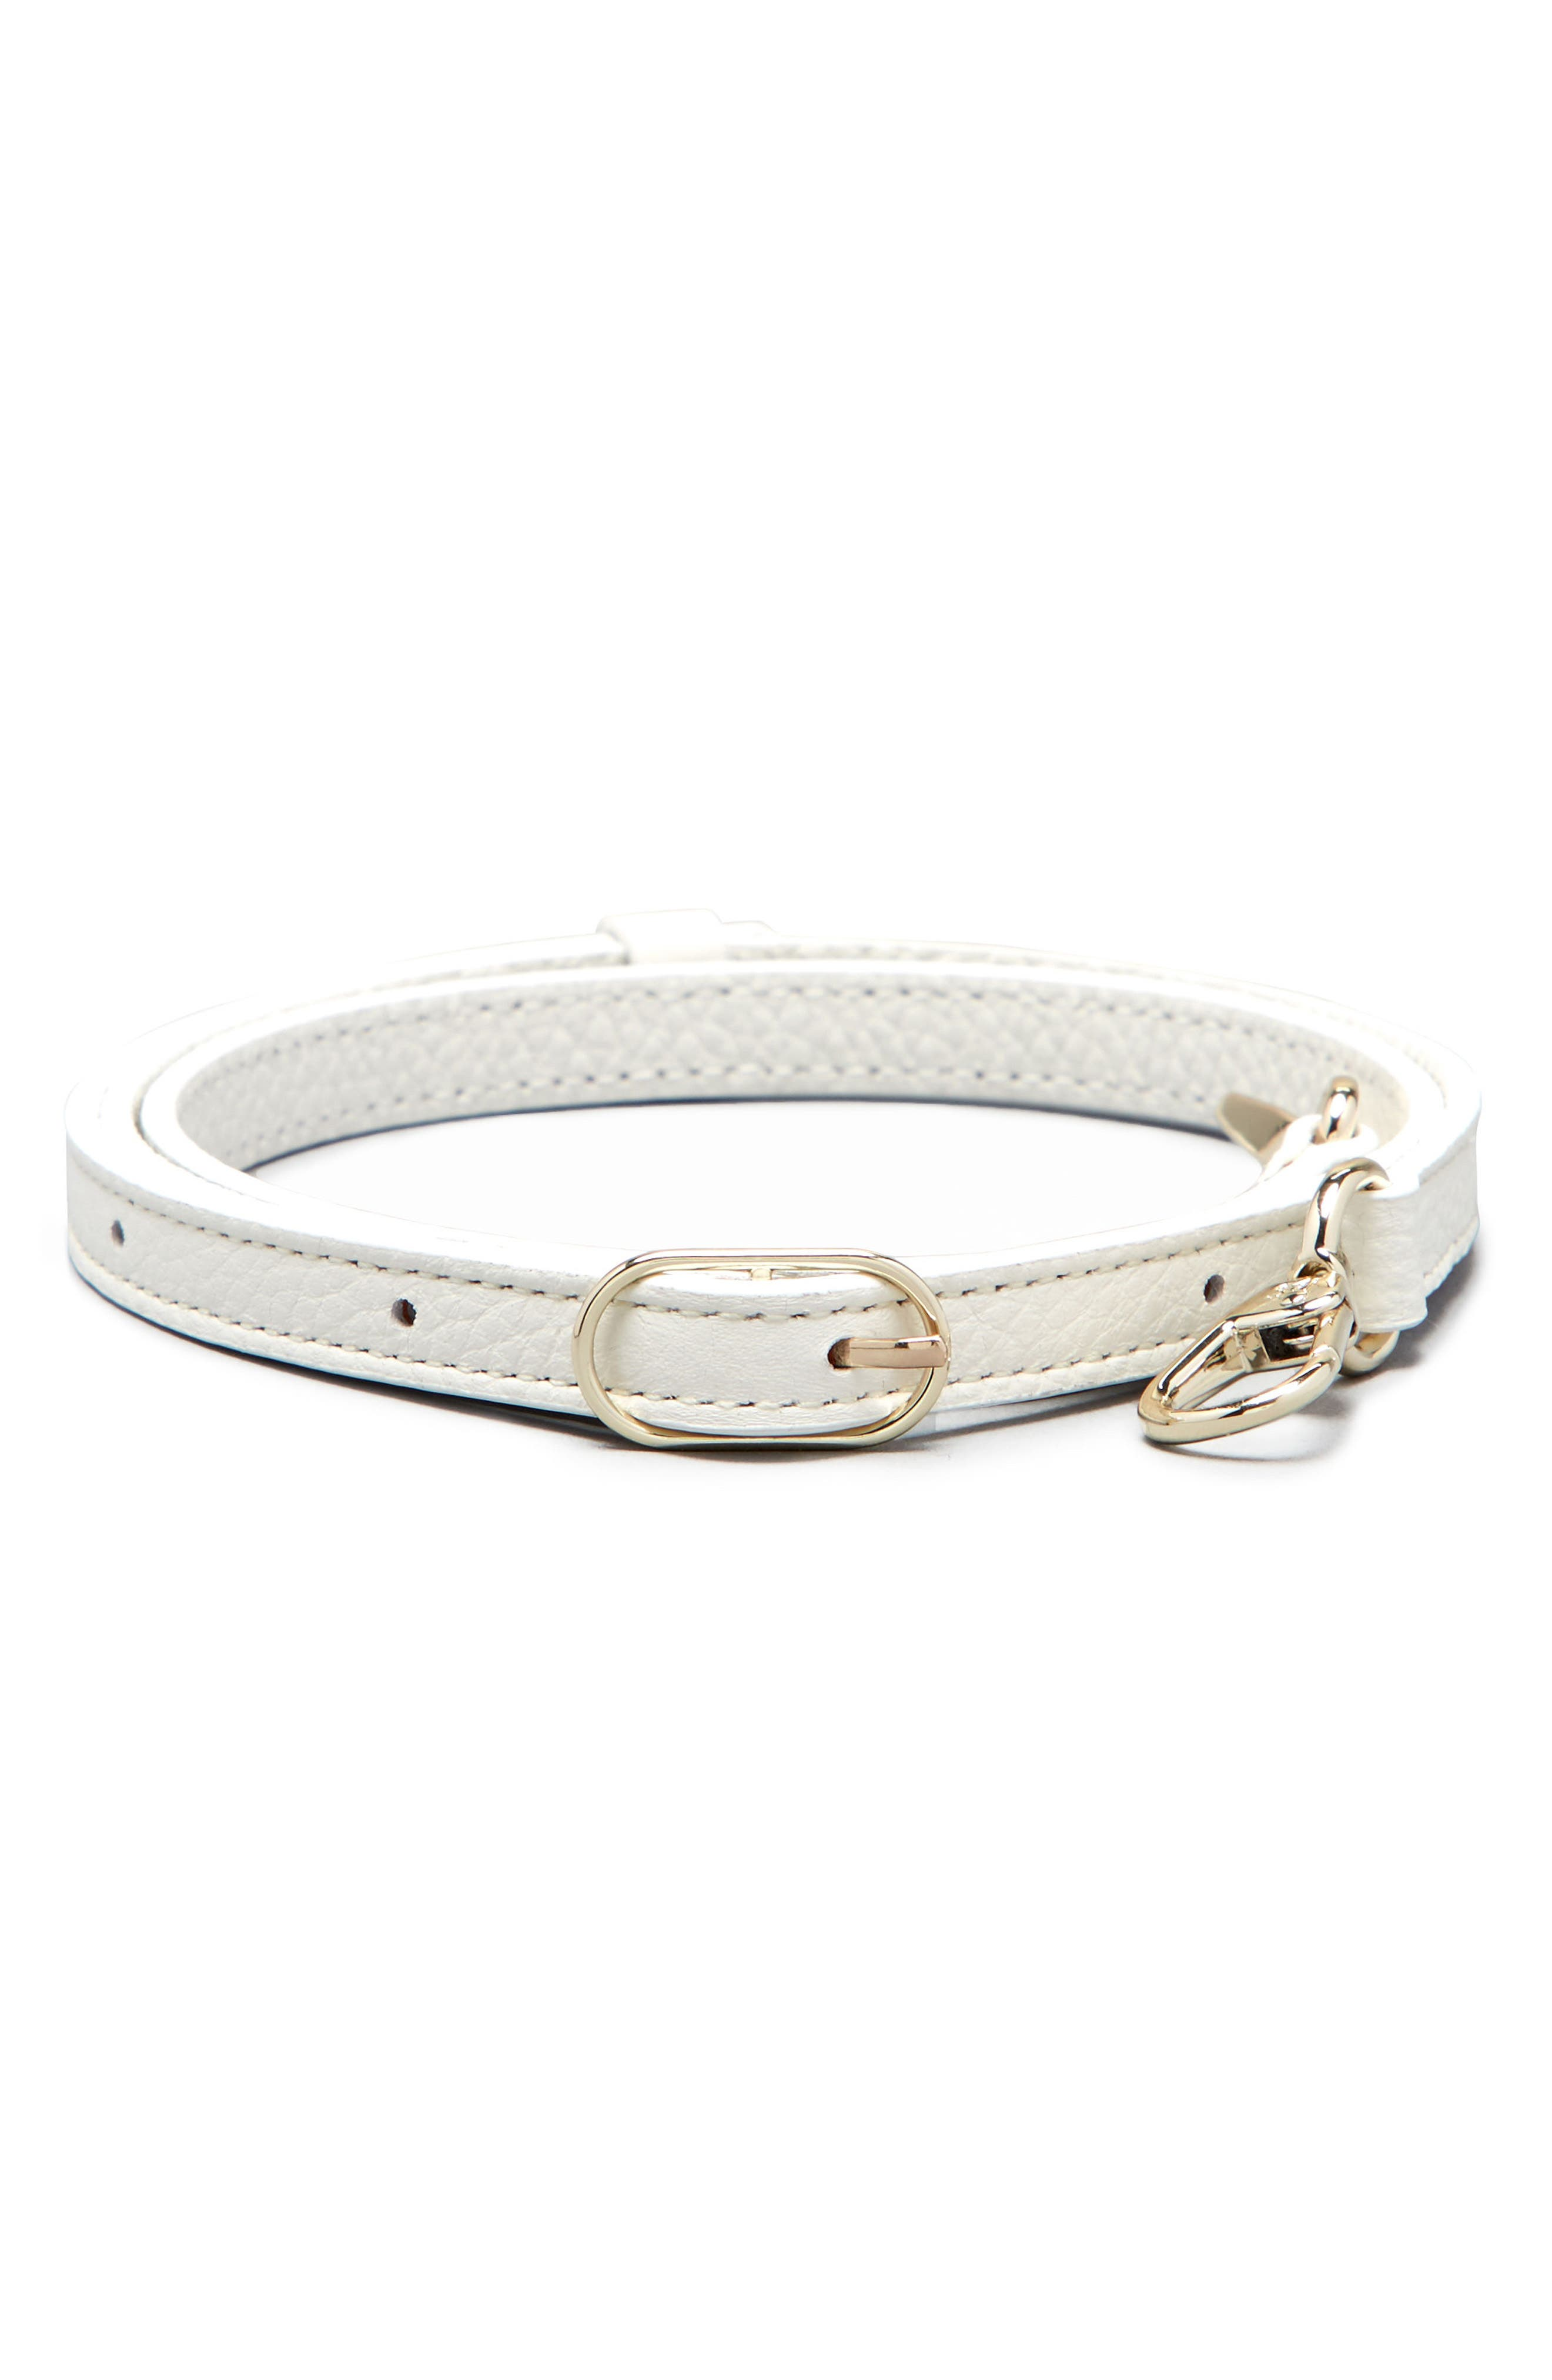 Alternate Image 1 Selected - Pop & Suki Leather Fanny Strap (Nordstrom Exclusive)